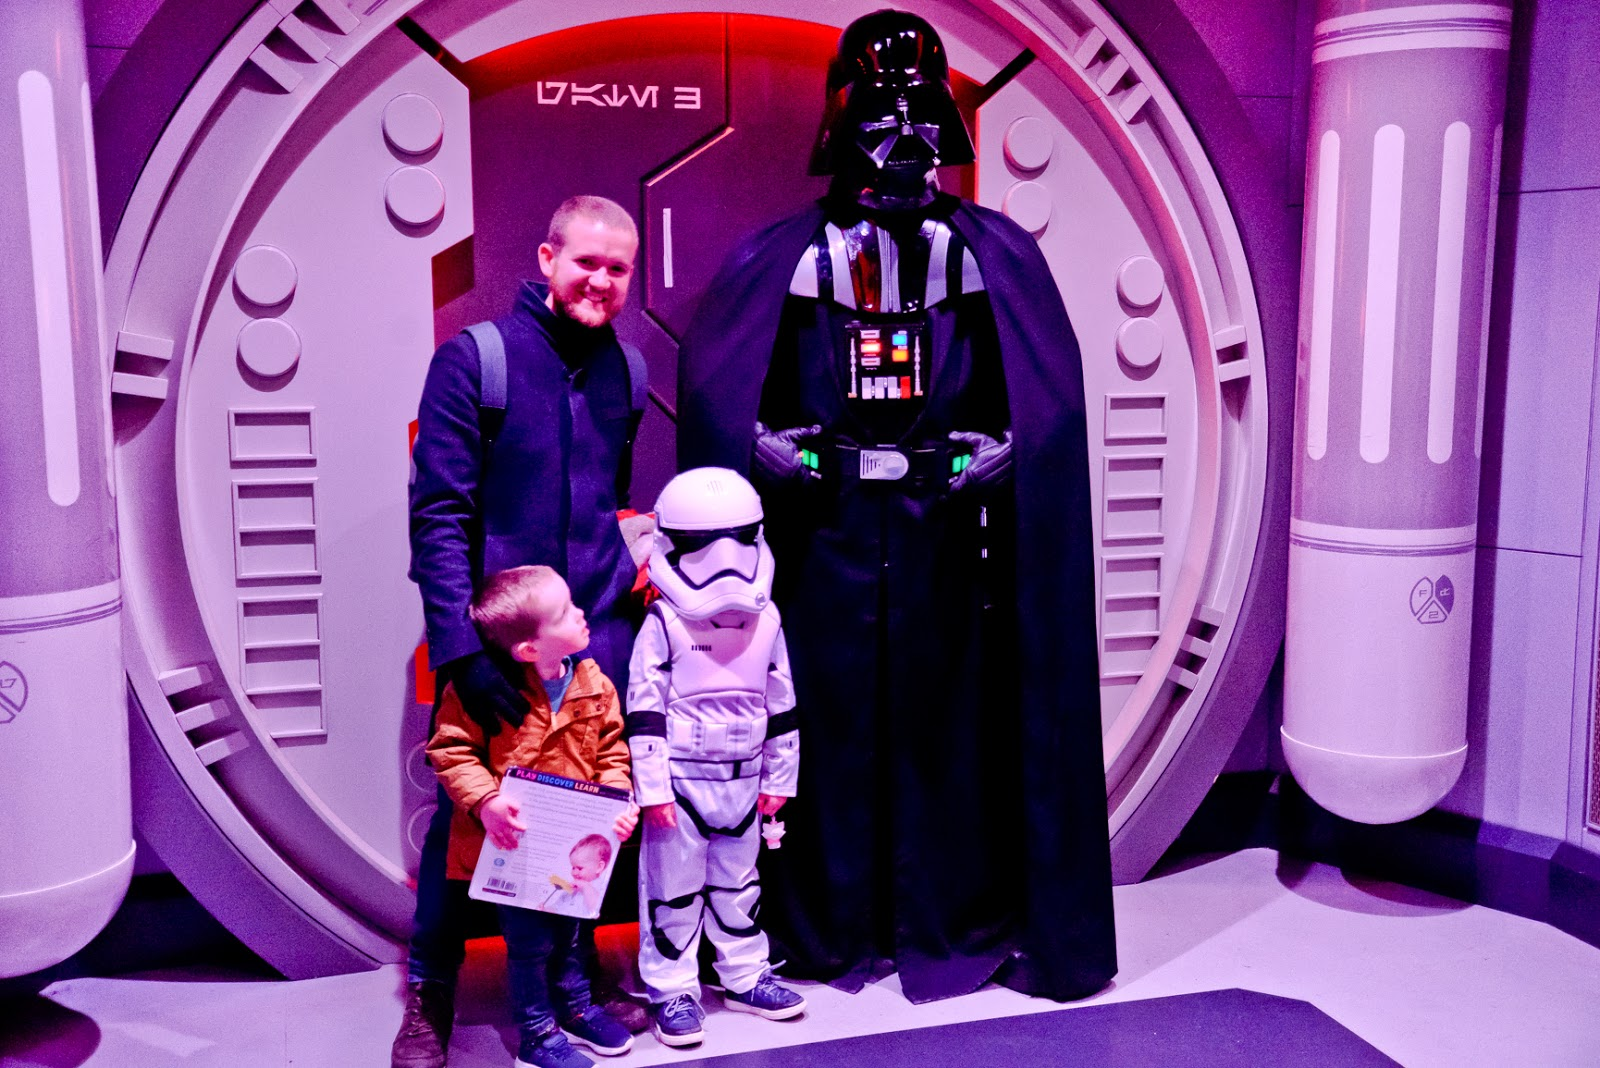 meeting darth vader, first time at disneyland paris, disneyland paris travel blog, disneyland, disneyland paris highlights, disneyland paris must do, vegetarians at disneyland paris,